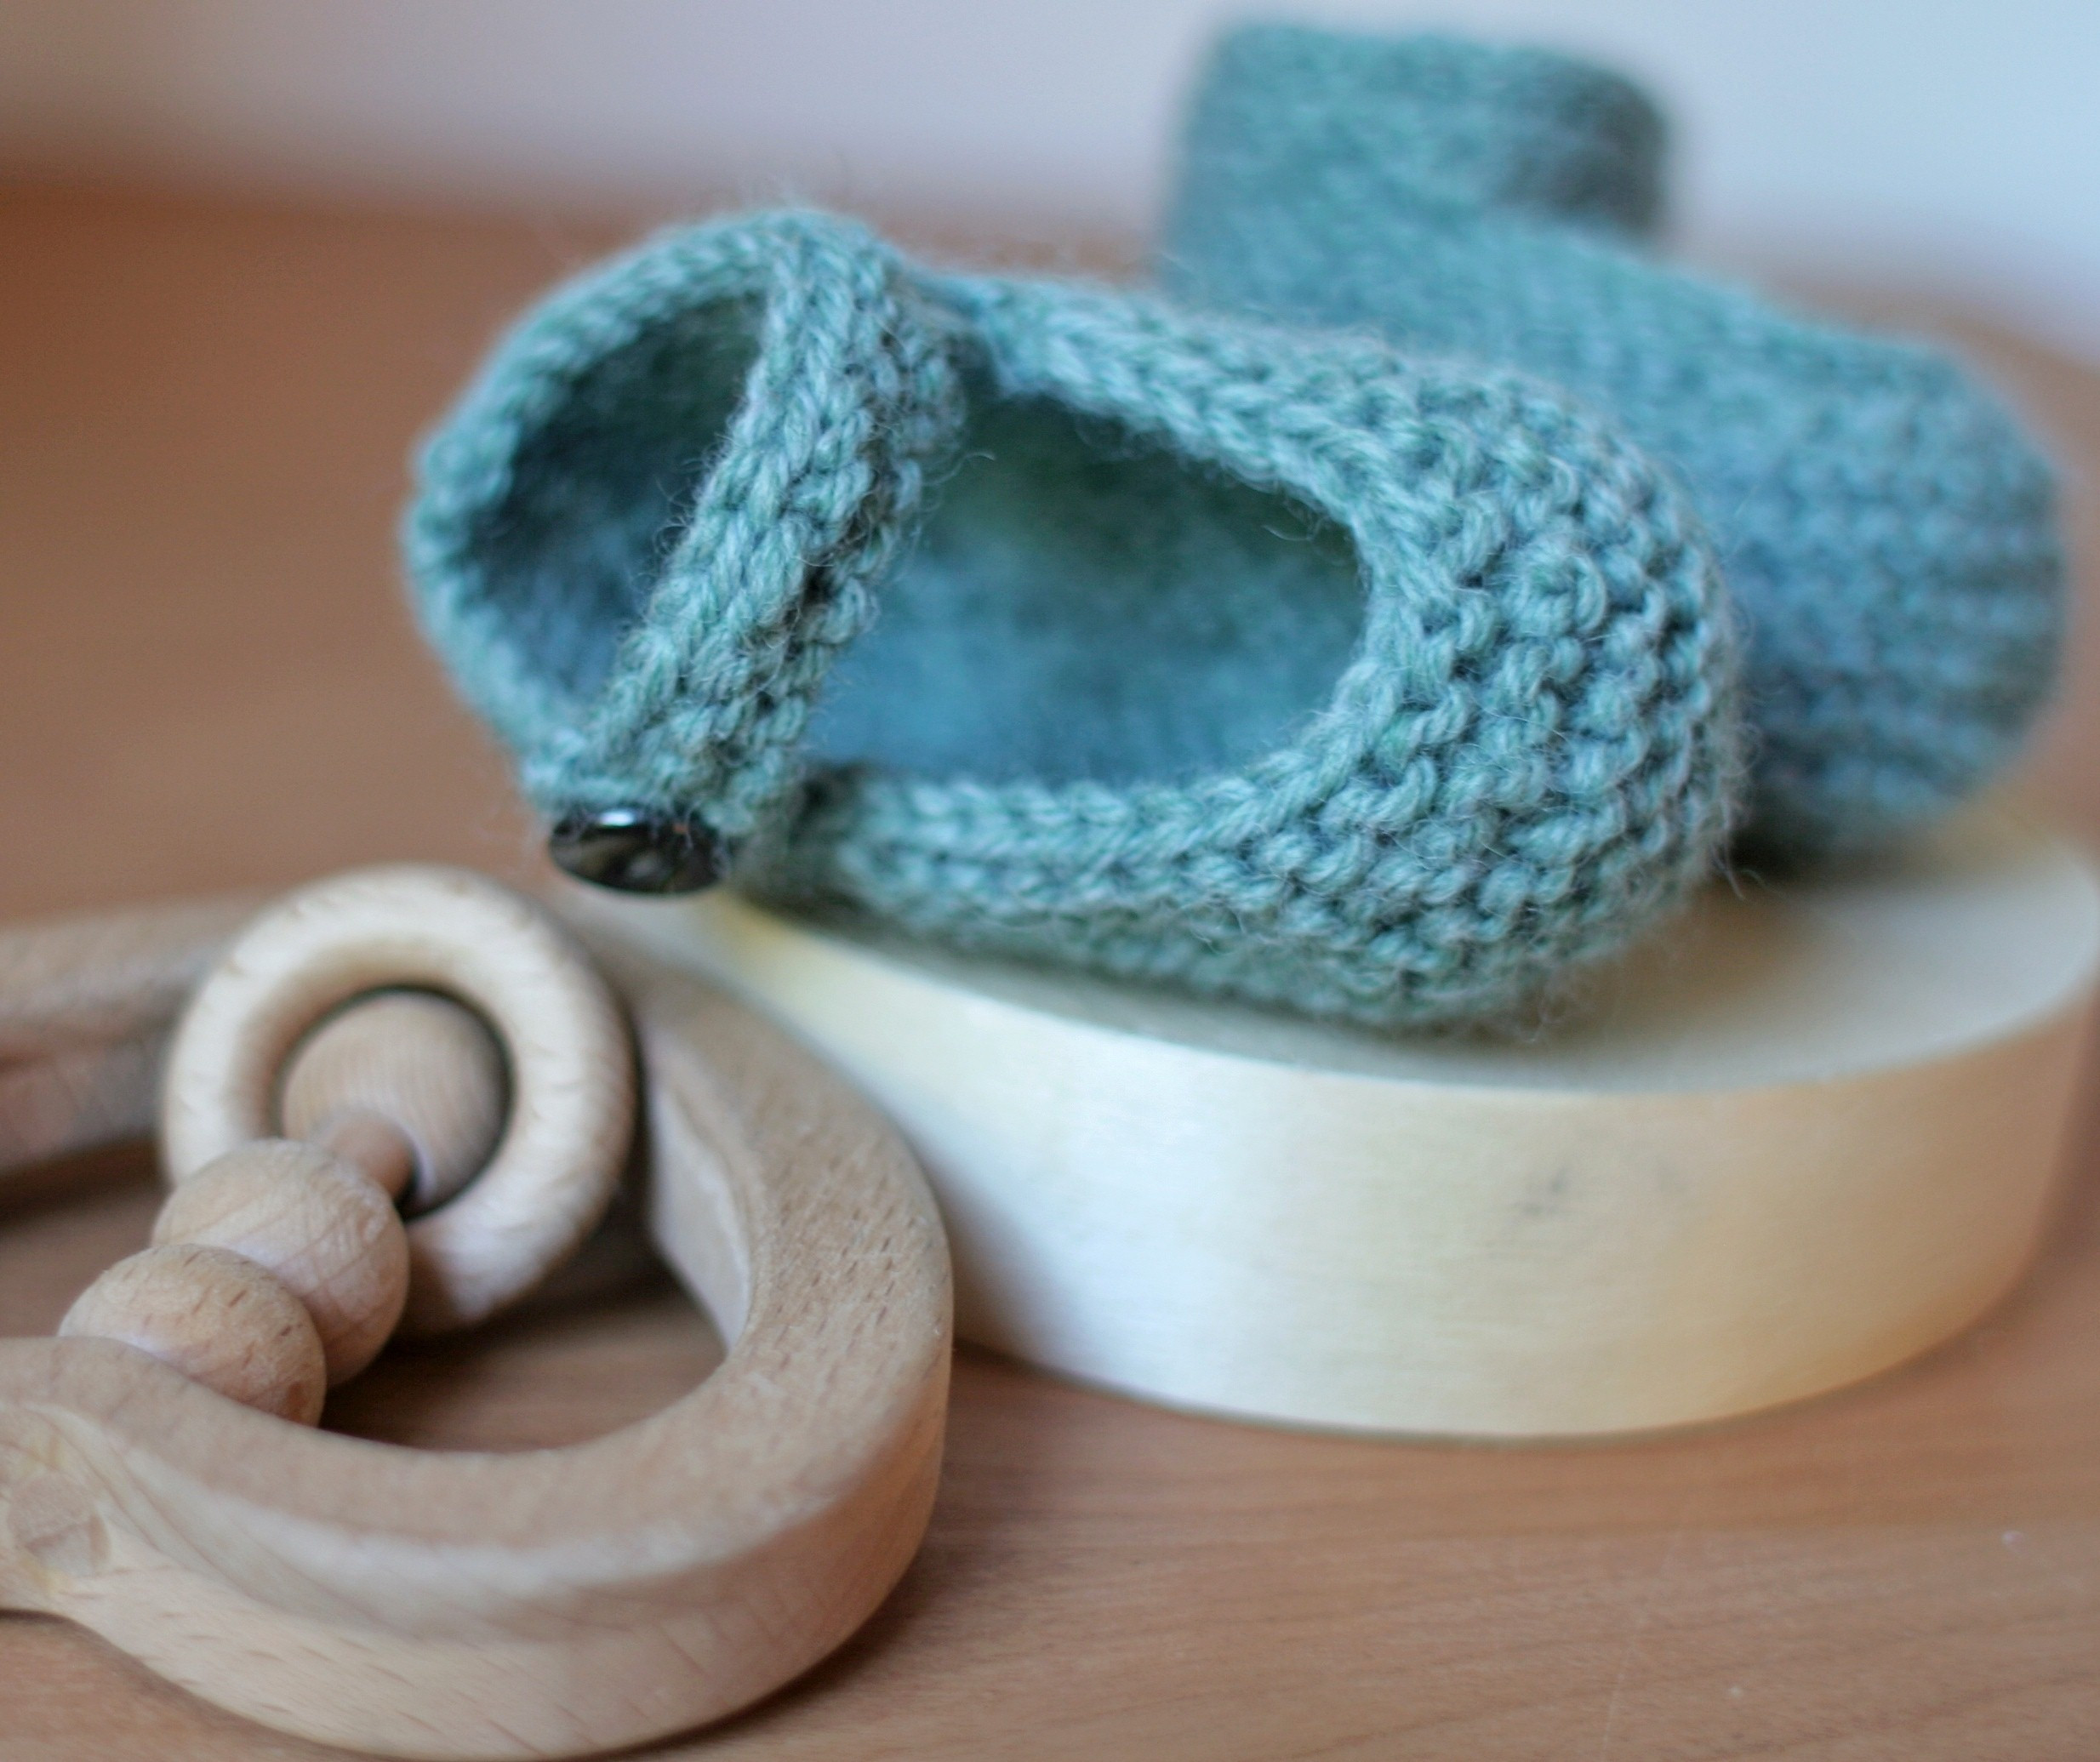 Easy Baby Knitting Patterns Unique Free Knitting Patterns Baby Booties Mary Jane Of Innovative 50 Photos Easy Baby Knitting Patterns